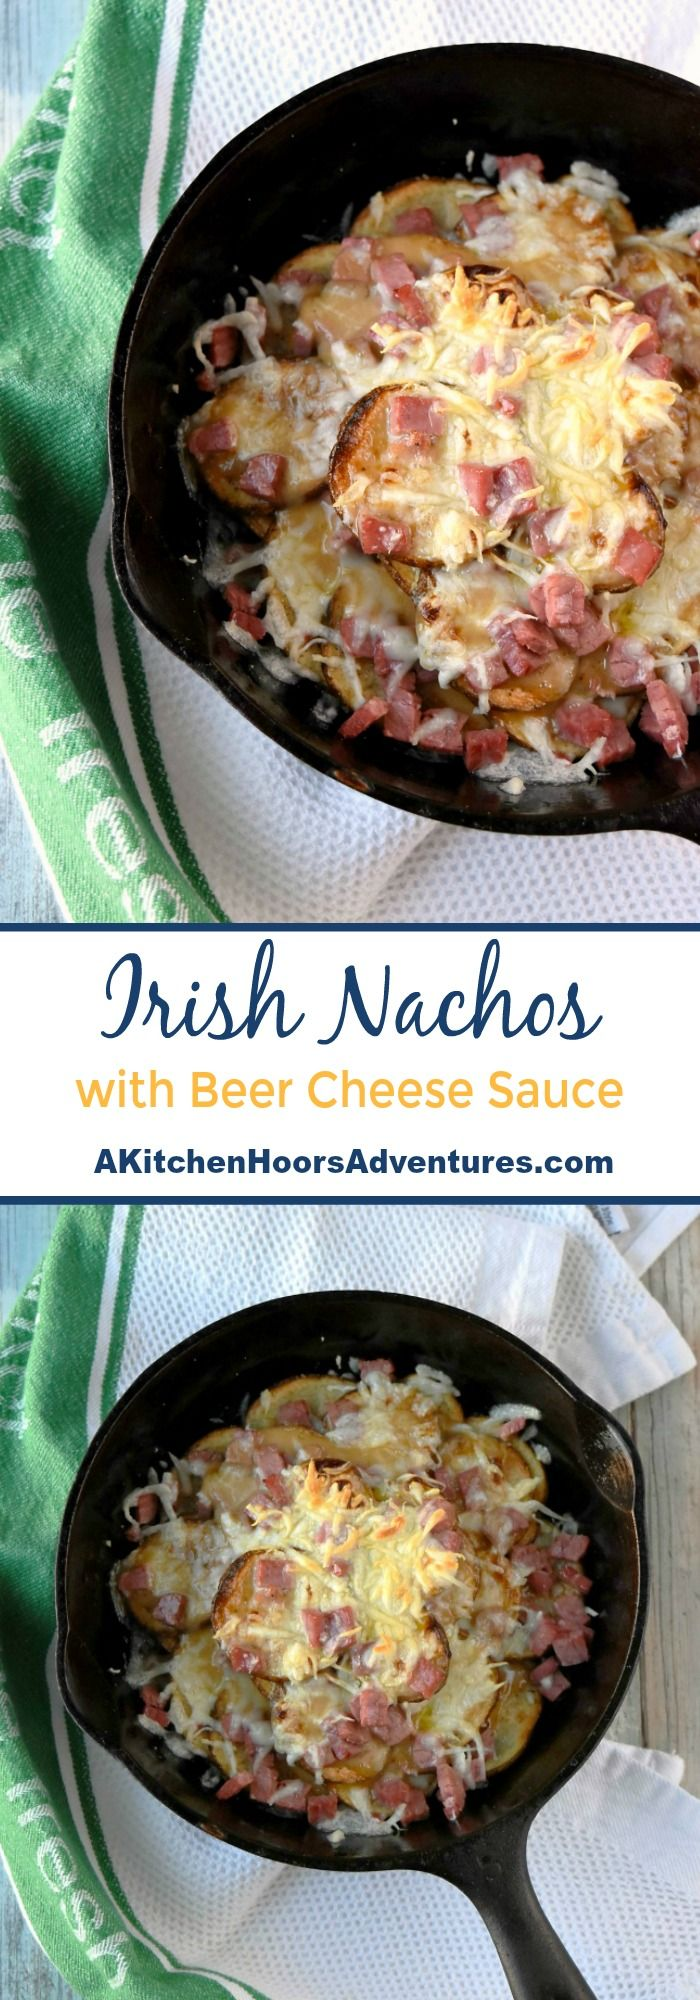 Layers of crisp baked potatoes are sprinkled with corned beef, Irish cheddar, and drizzled with a beer cheese sauce. Irish Nachos with Beer Cheese Sauce are stacked with delicious, cheesy flavors. #SundaySupper #IrishNachos #cheeserecipe #cheesesauce